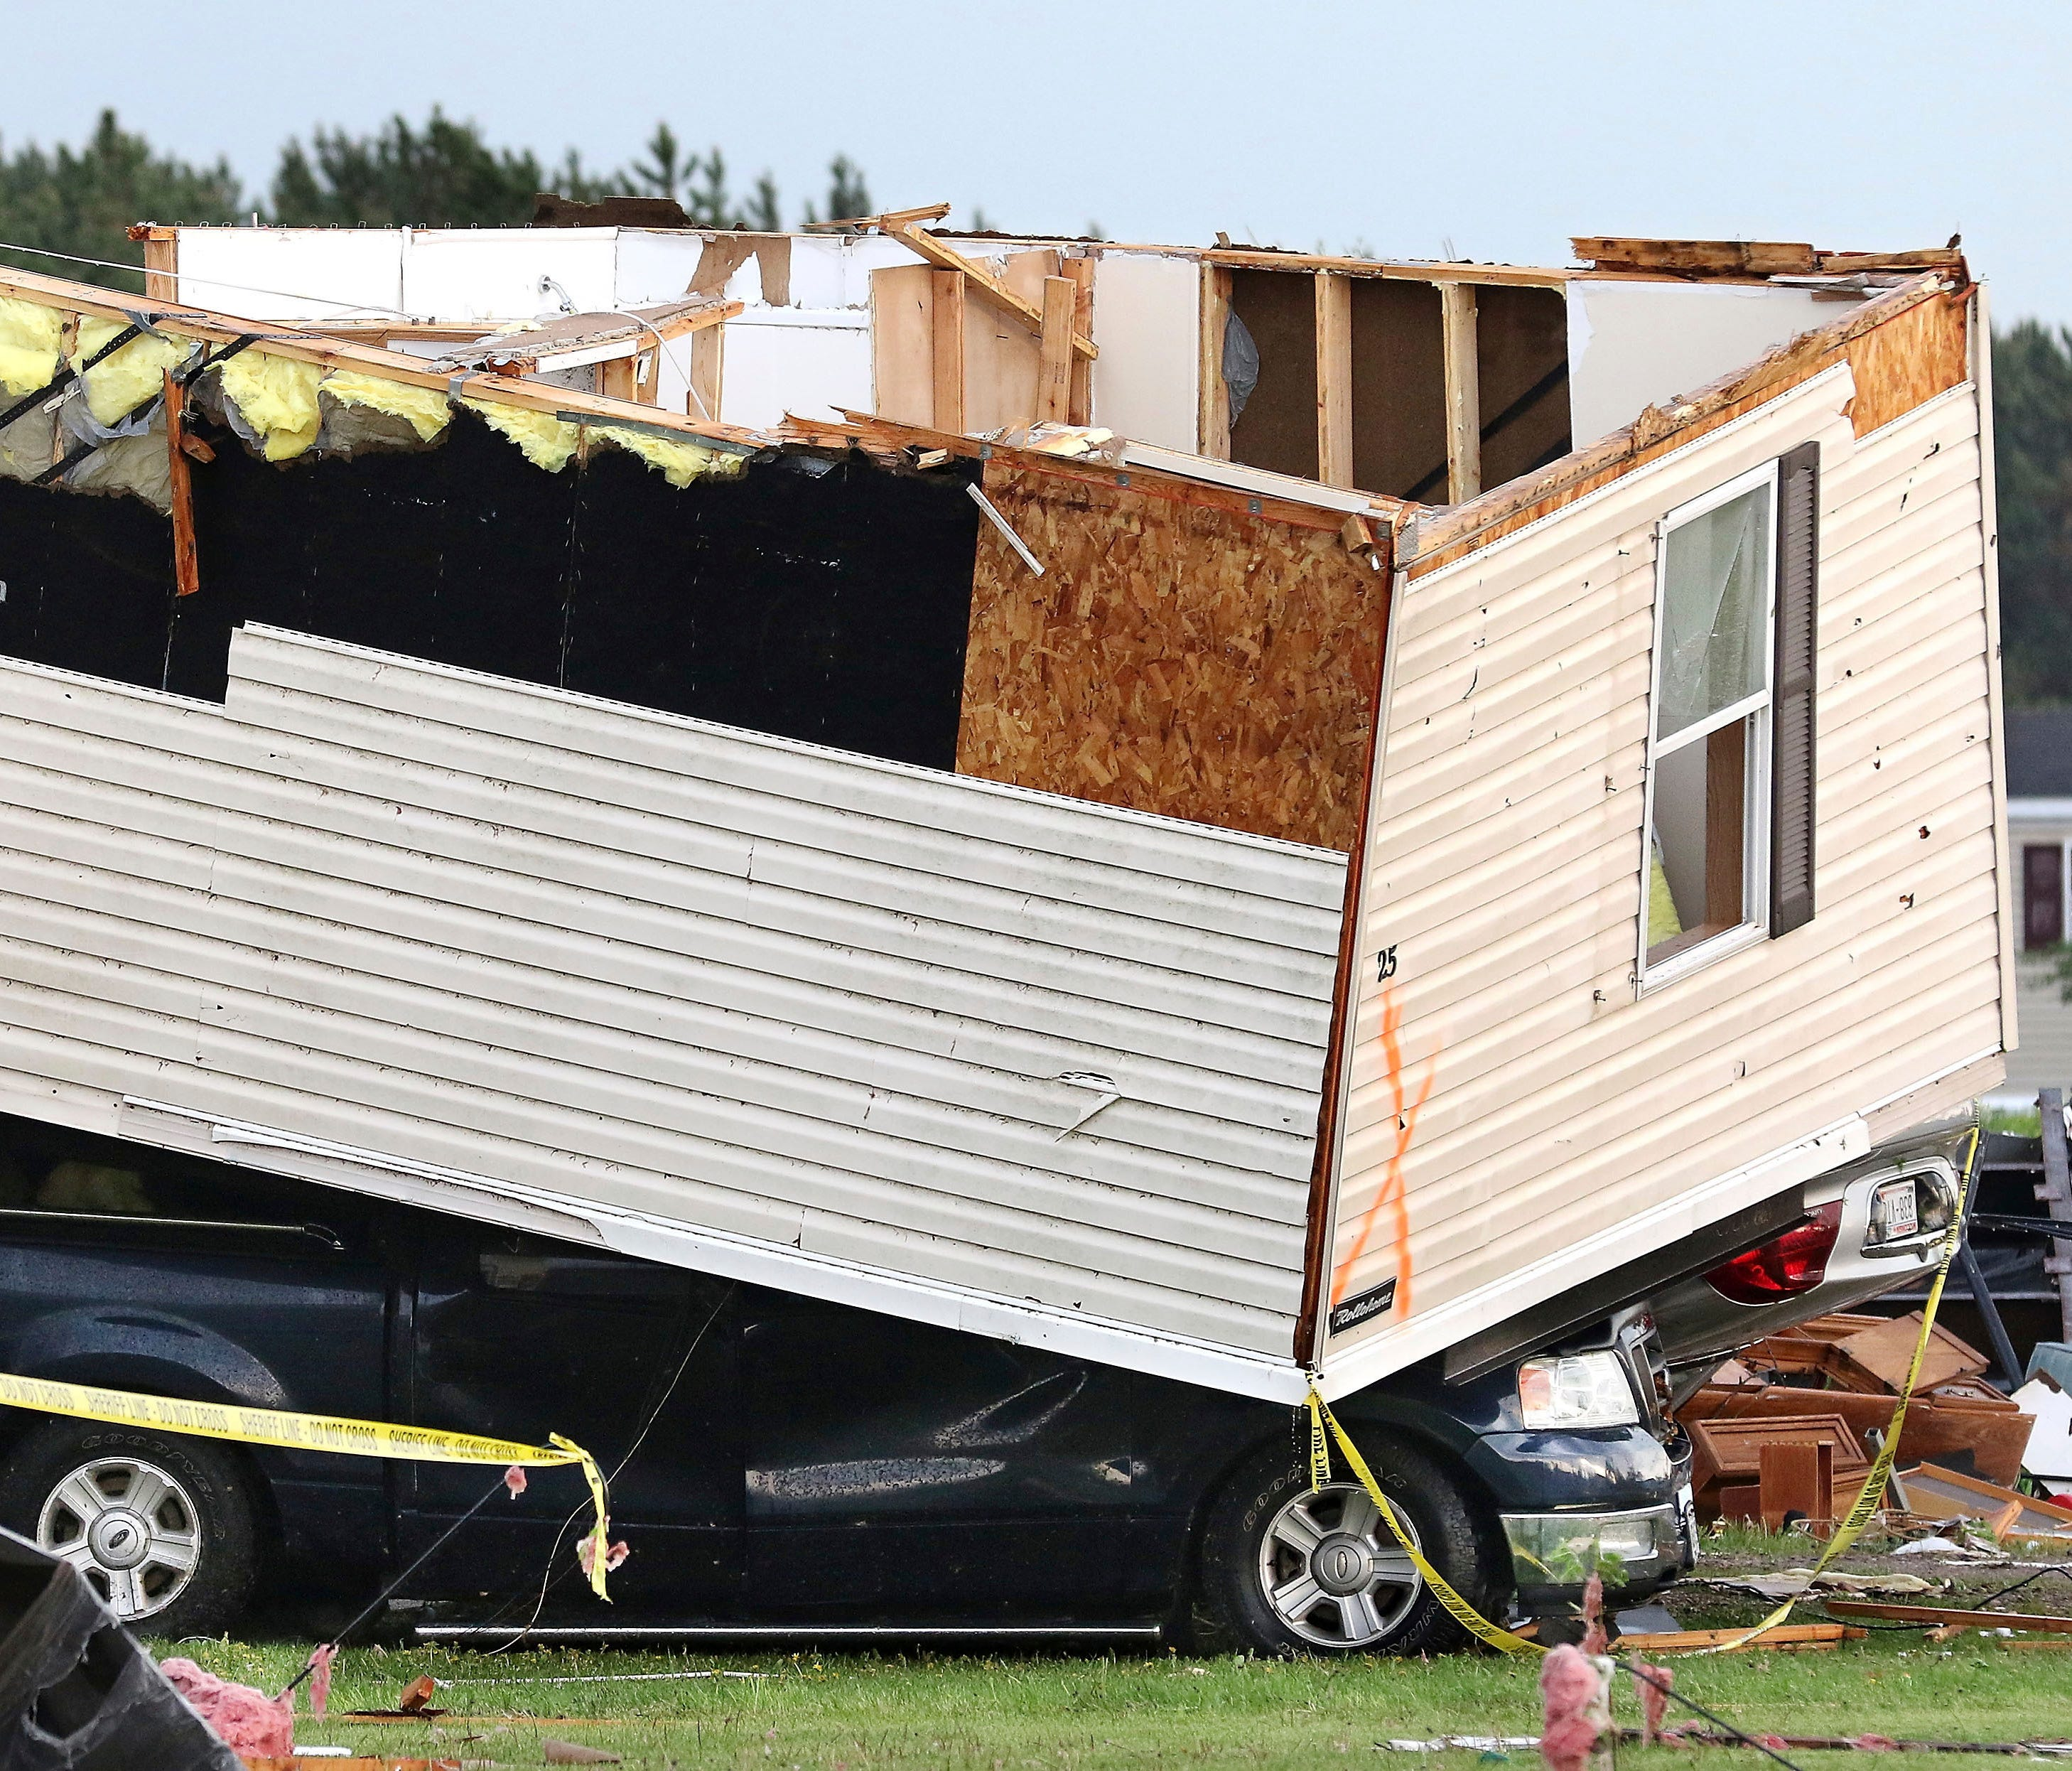 Part of a building sits on a vehicle after a tornado ripped through Prairie Lake Estates trailer home park, just north of Chetek, Wis., Tuesday, May 16, 2017.